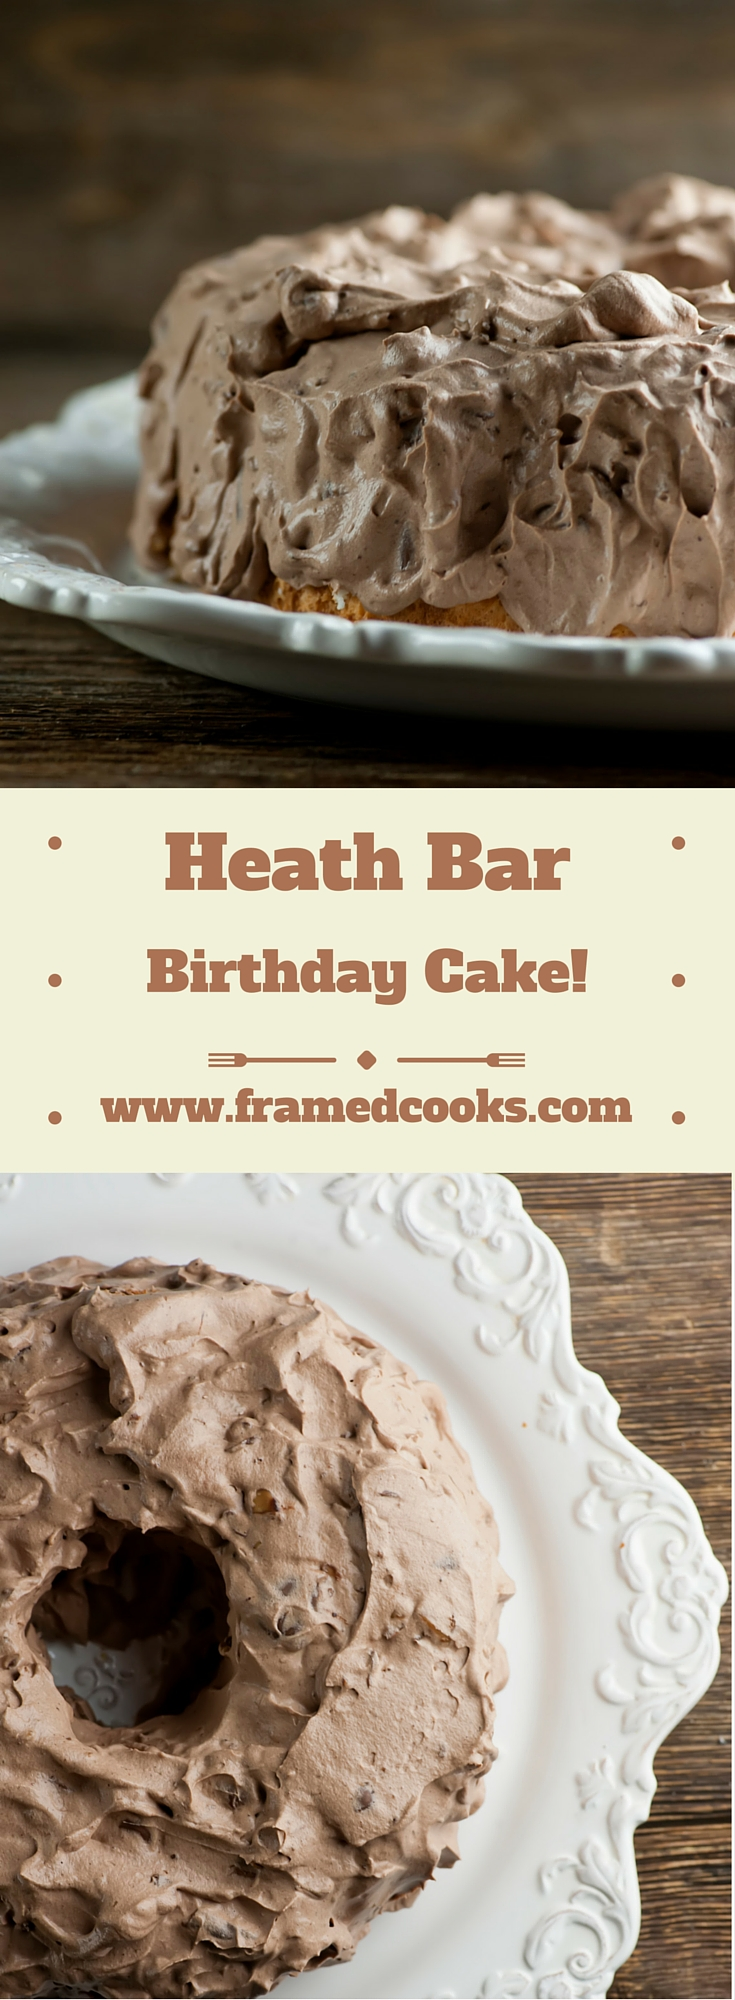 This easy recipe for Heath Bar Birthday Cake takes just five ingredients and no baking, and makes a delicious and dramatic dessert.